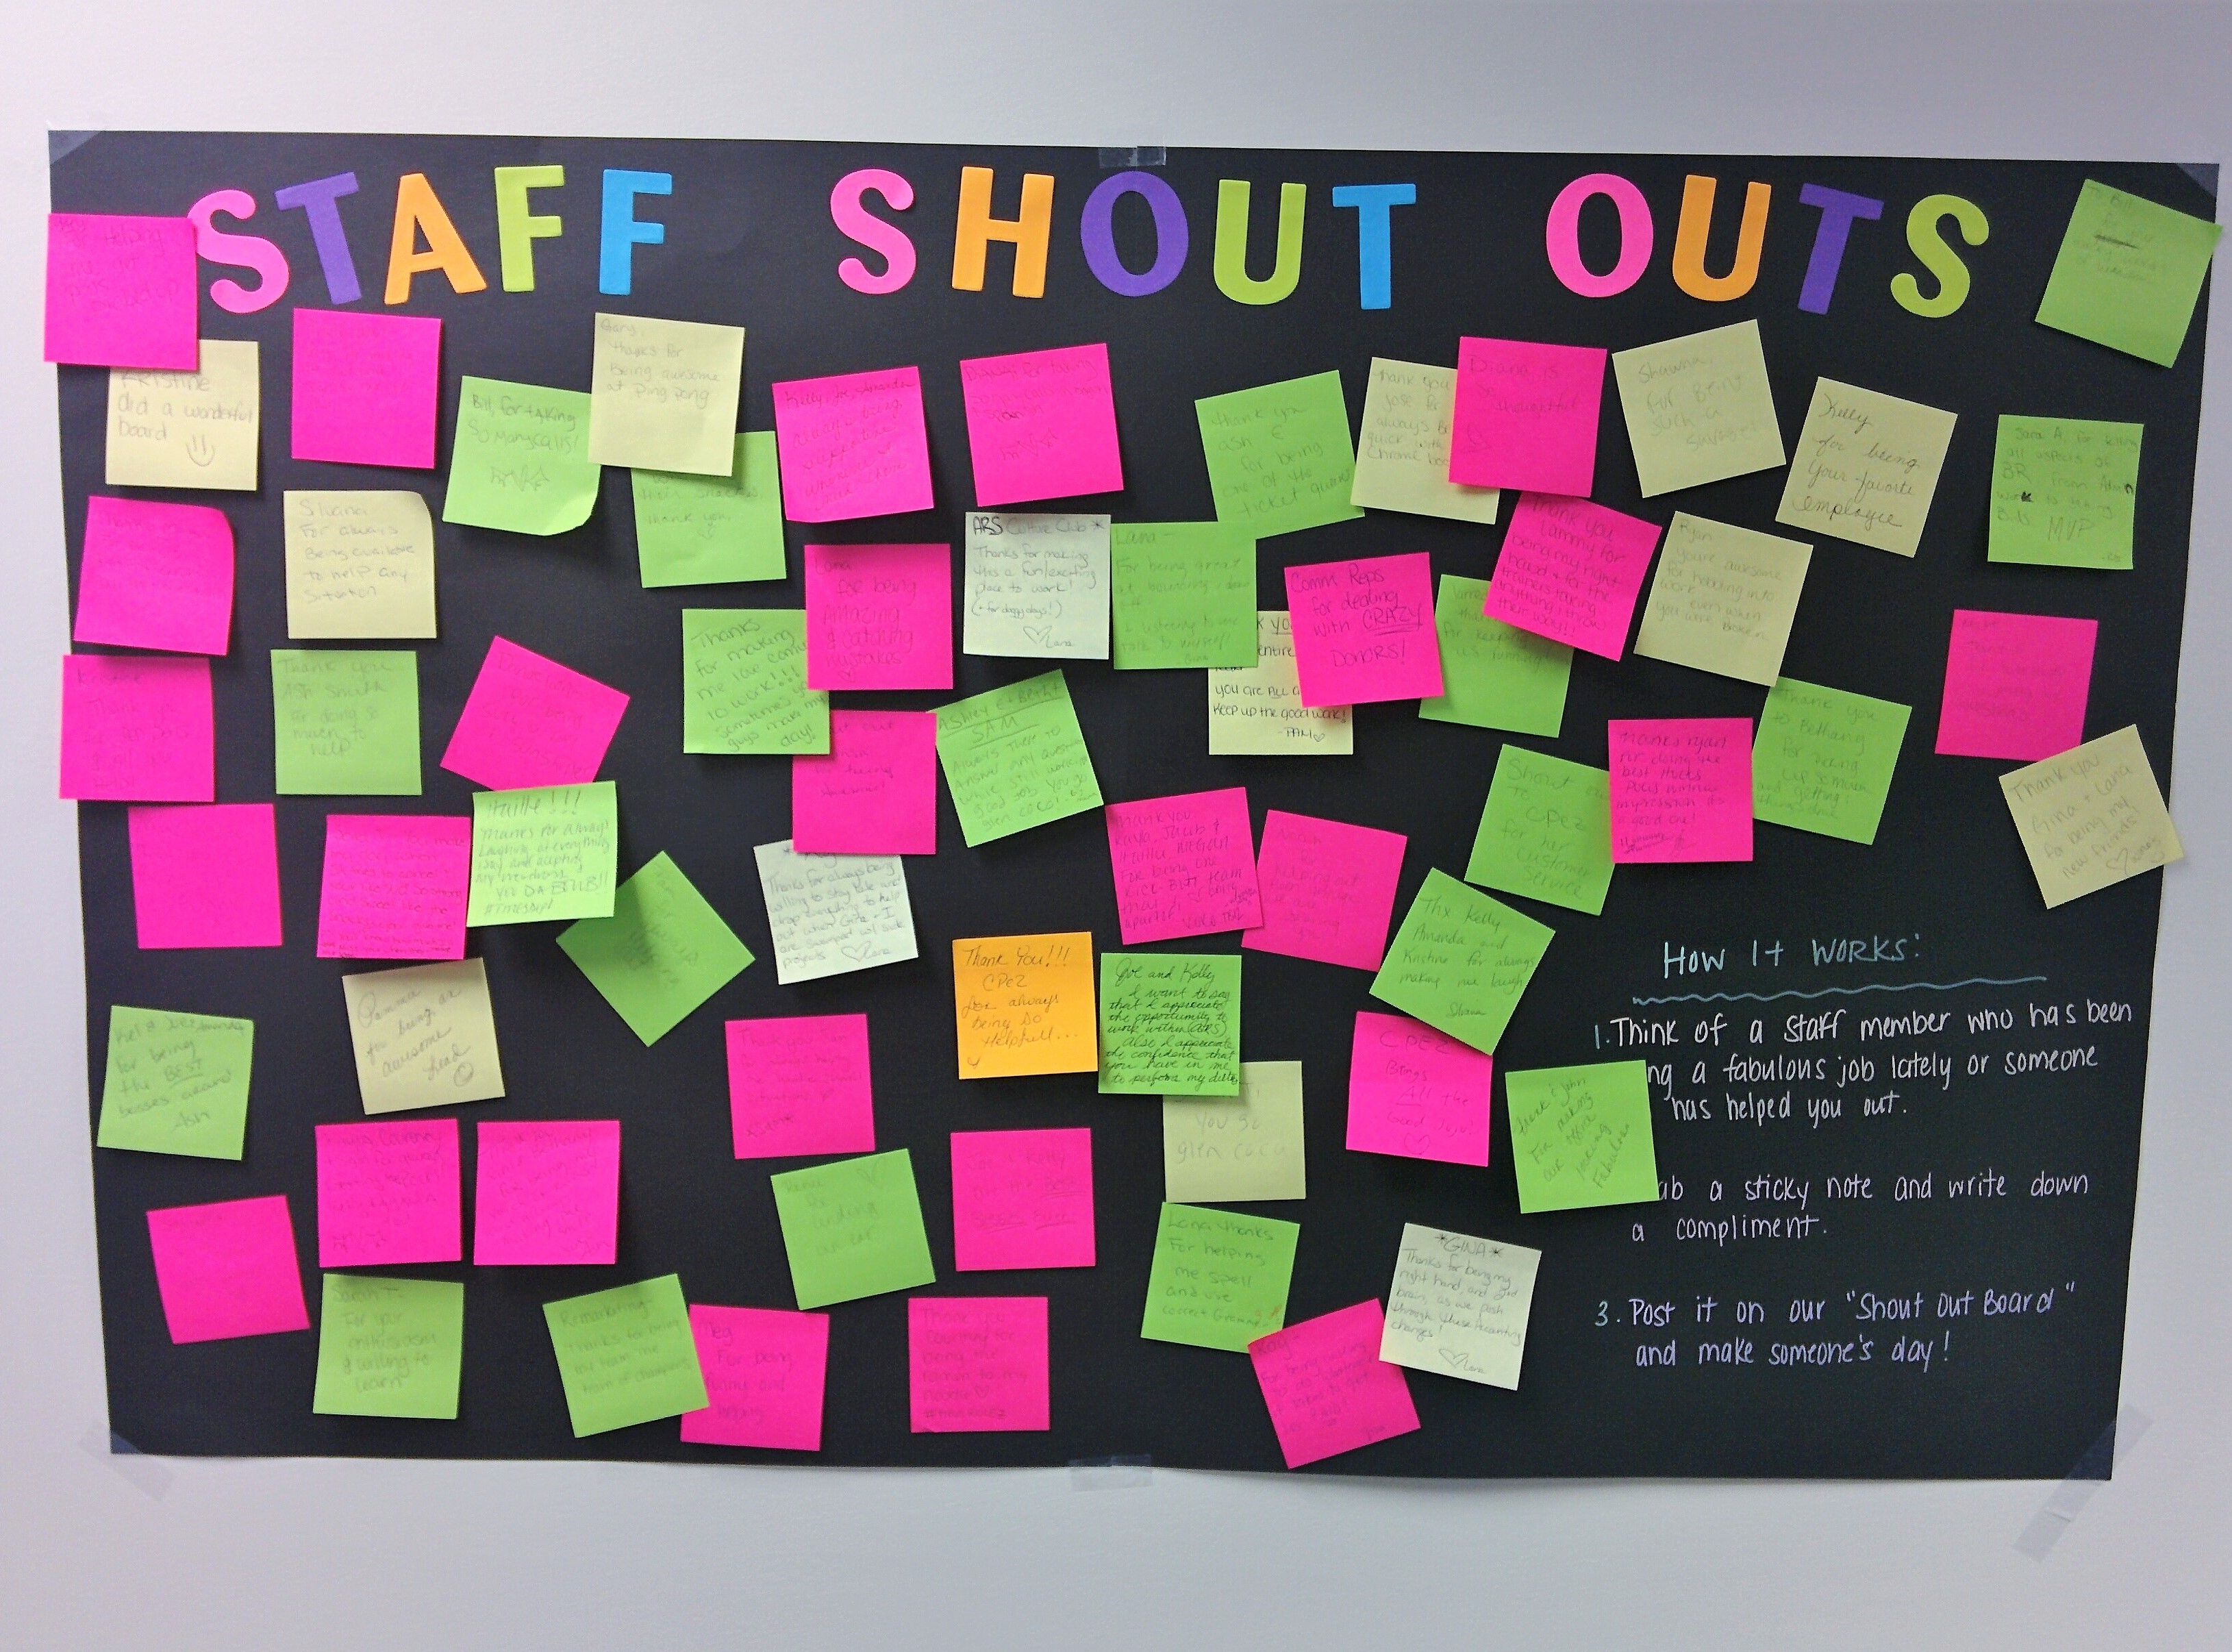 Customer Service Week 2017 Shout Out Board